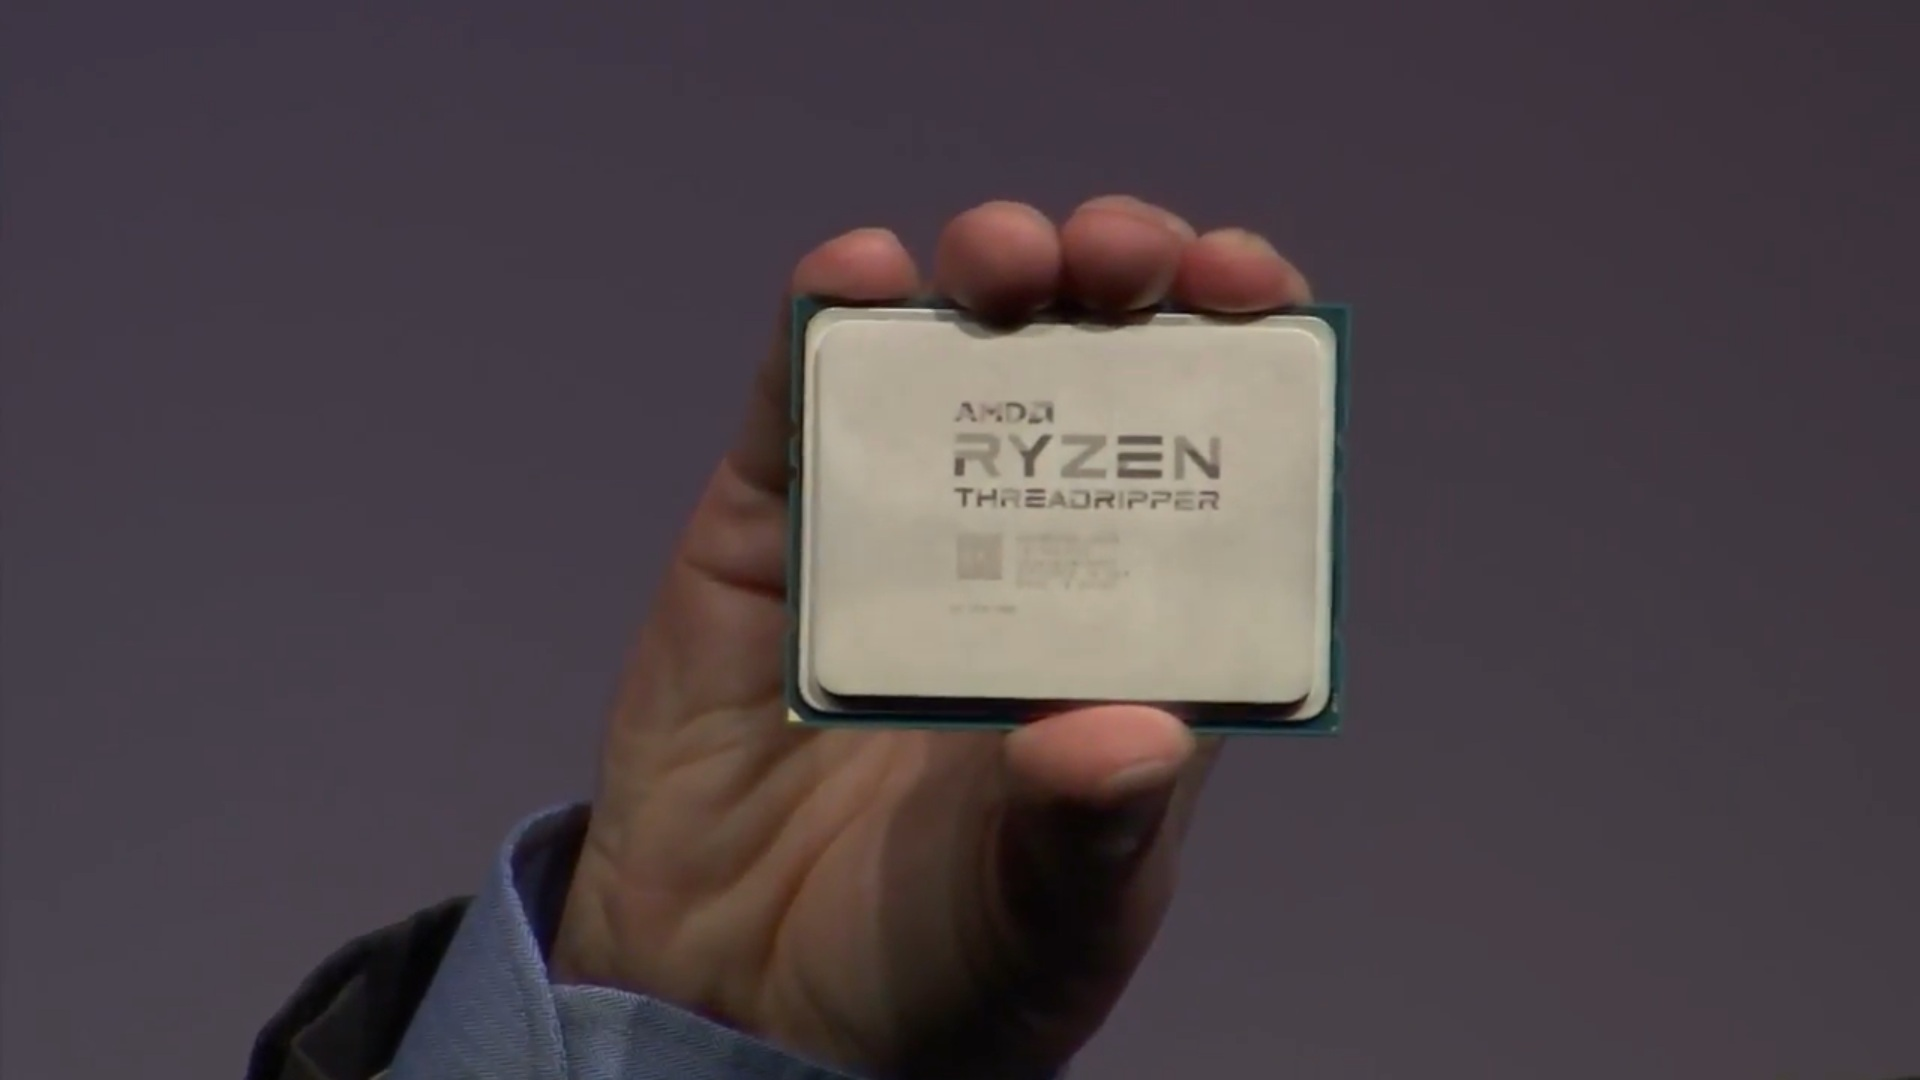 AMD Details Ryzen Threadripper X399 Platform - 16 Cores, 32 Threads, 64 PCIe Gen3 Lanes & Quad ...